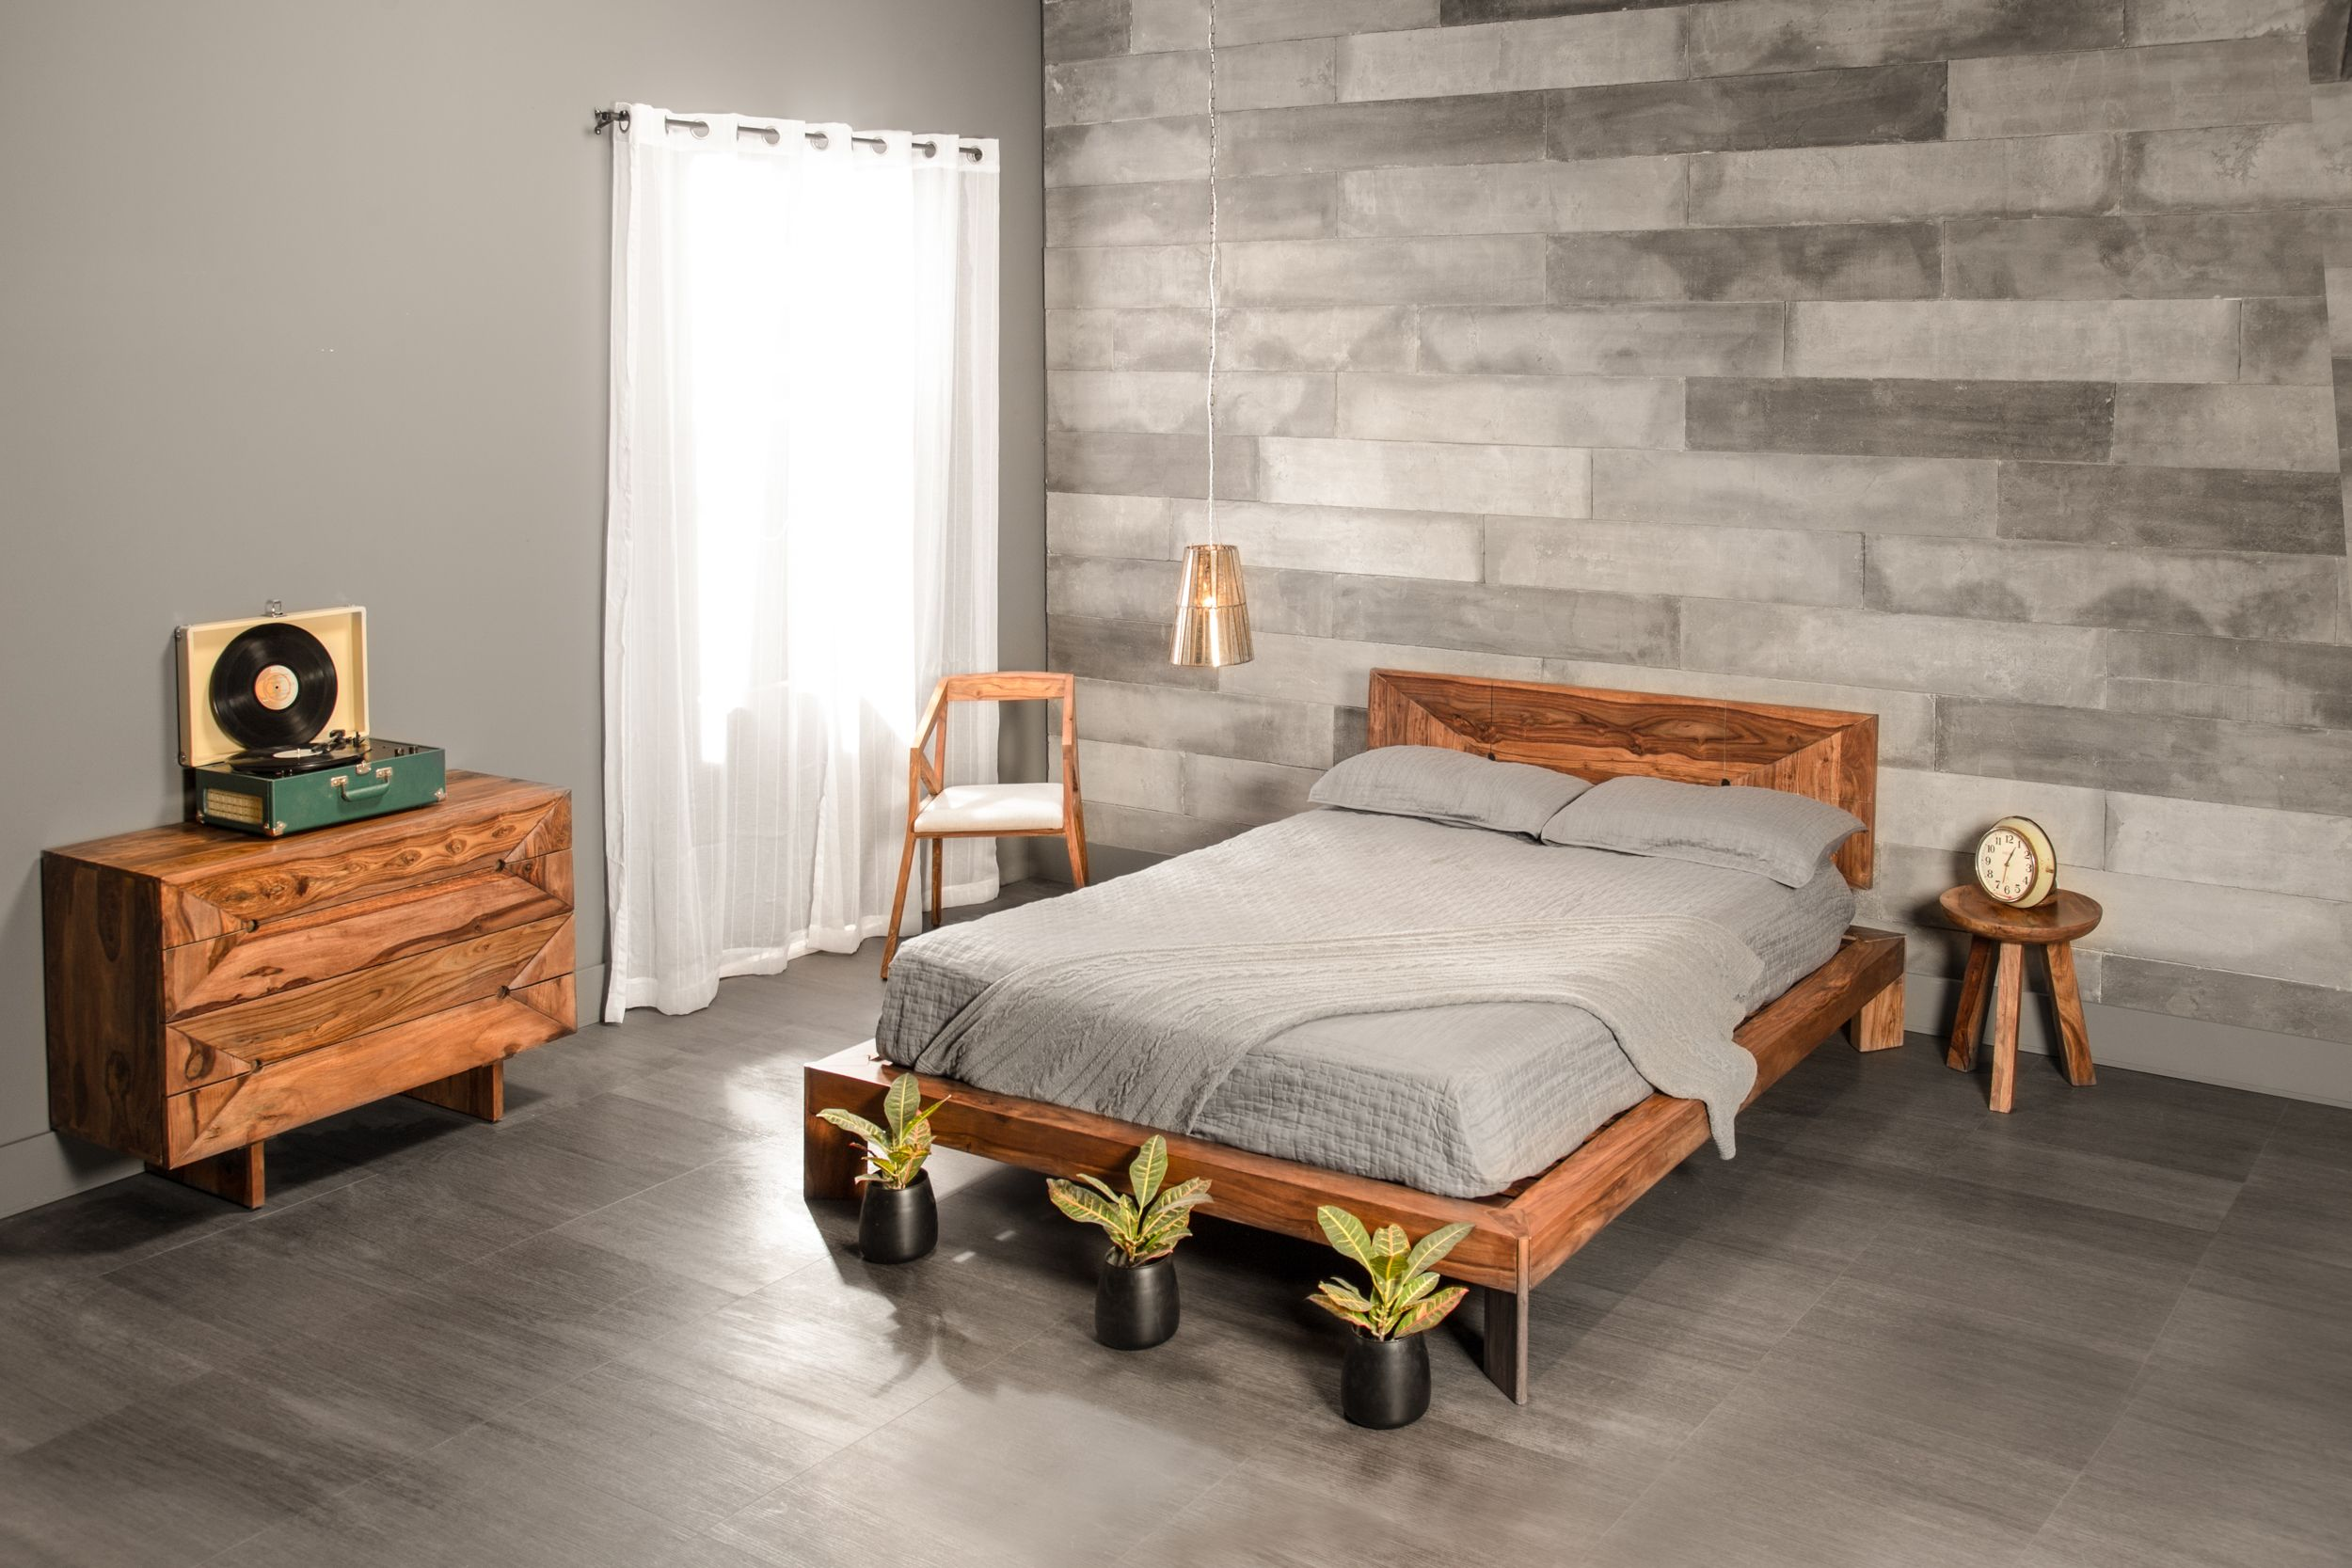 Pin by Artemano on — Bedrooms — Modern solid wood